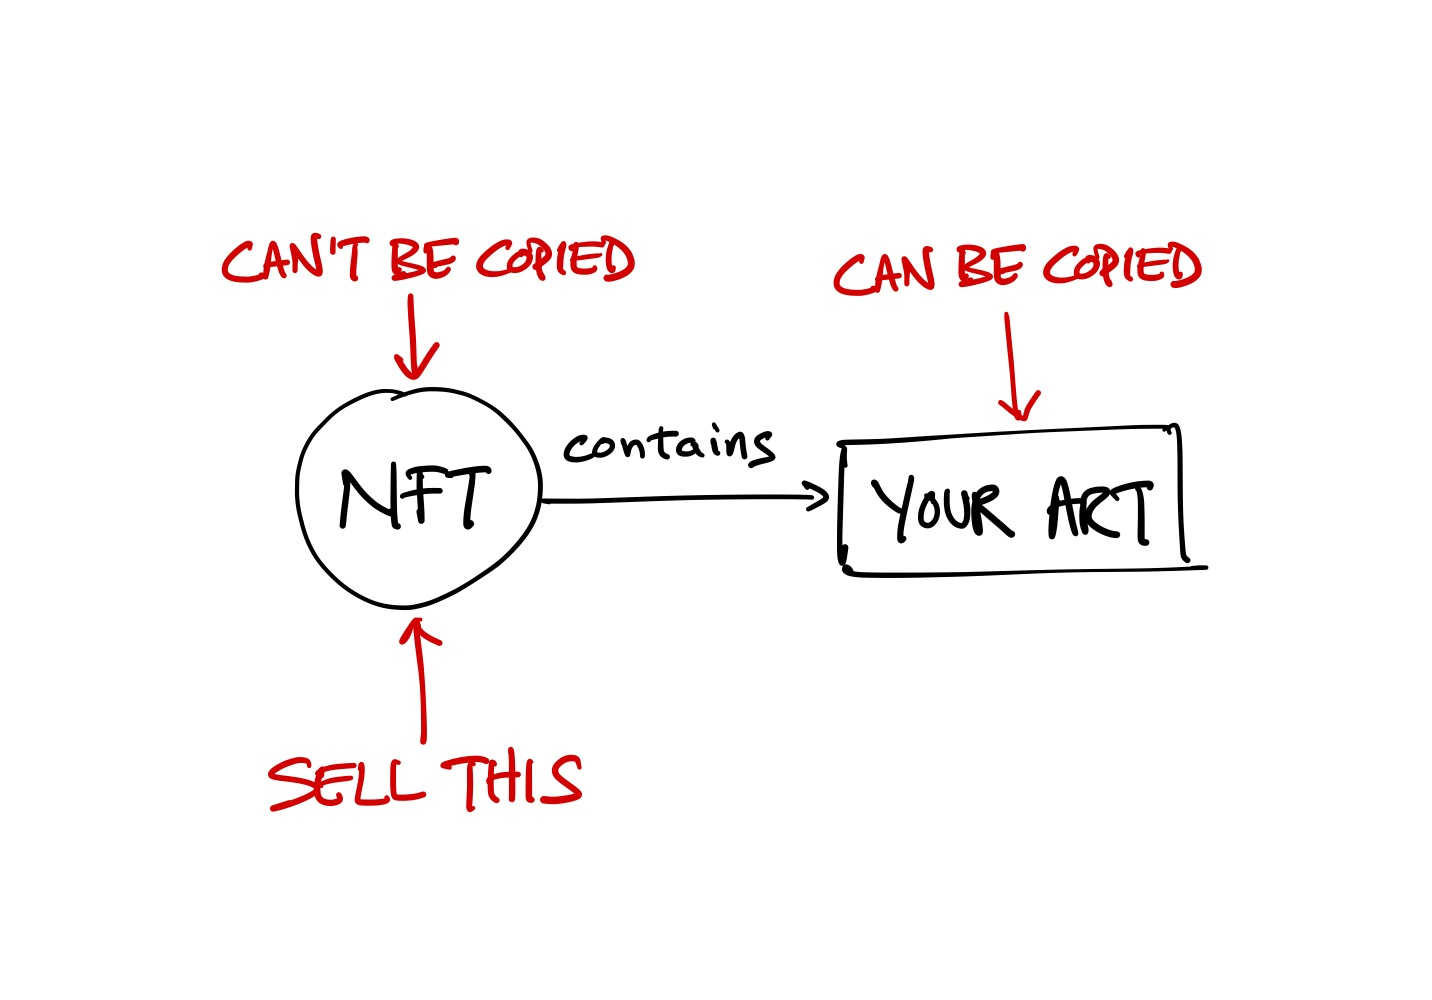 An NFT contains your art and can't be copied.